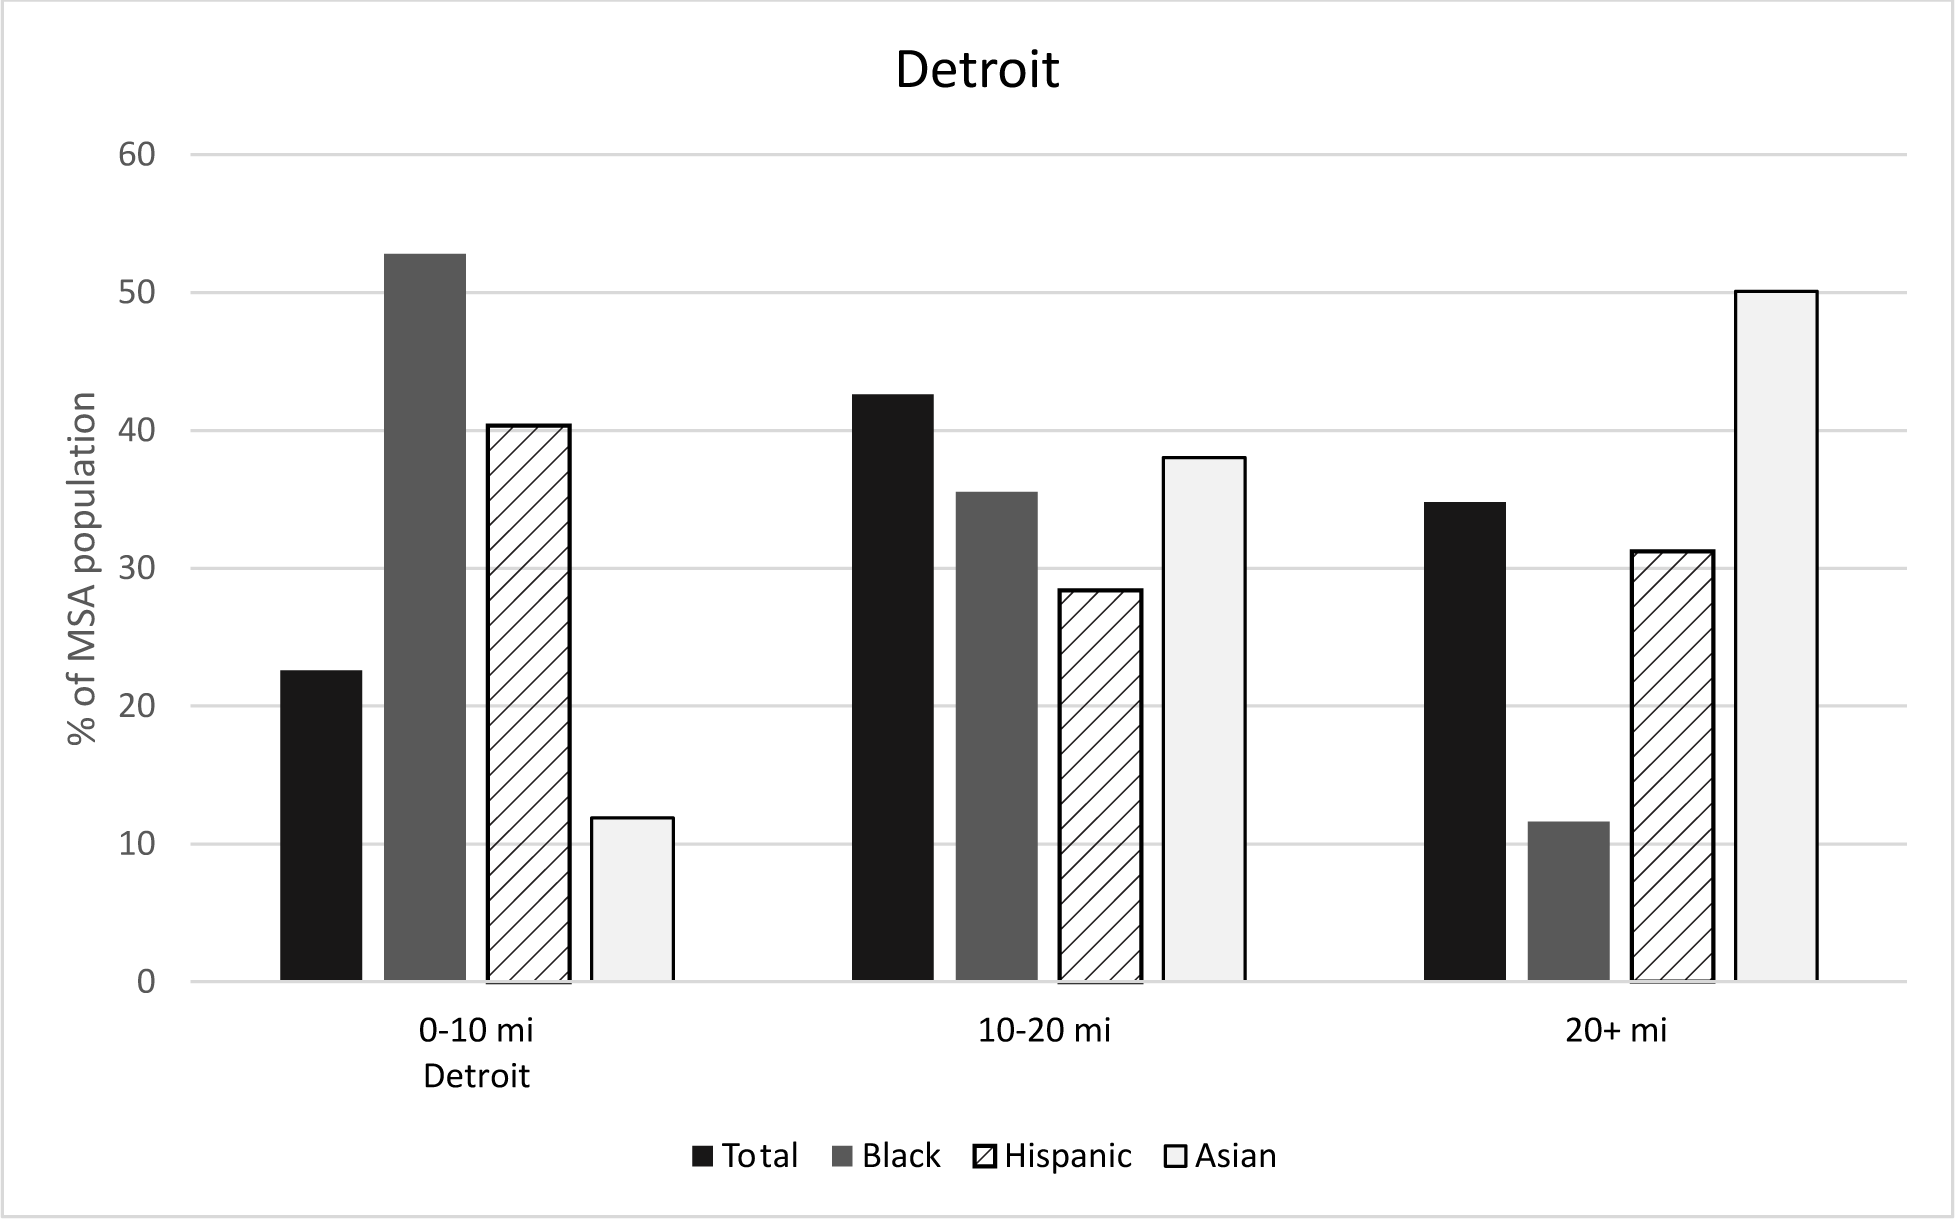 Figure 5: Racial/ethnic concentration by distance to CBD, Detroit. See accessible link for data.